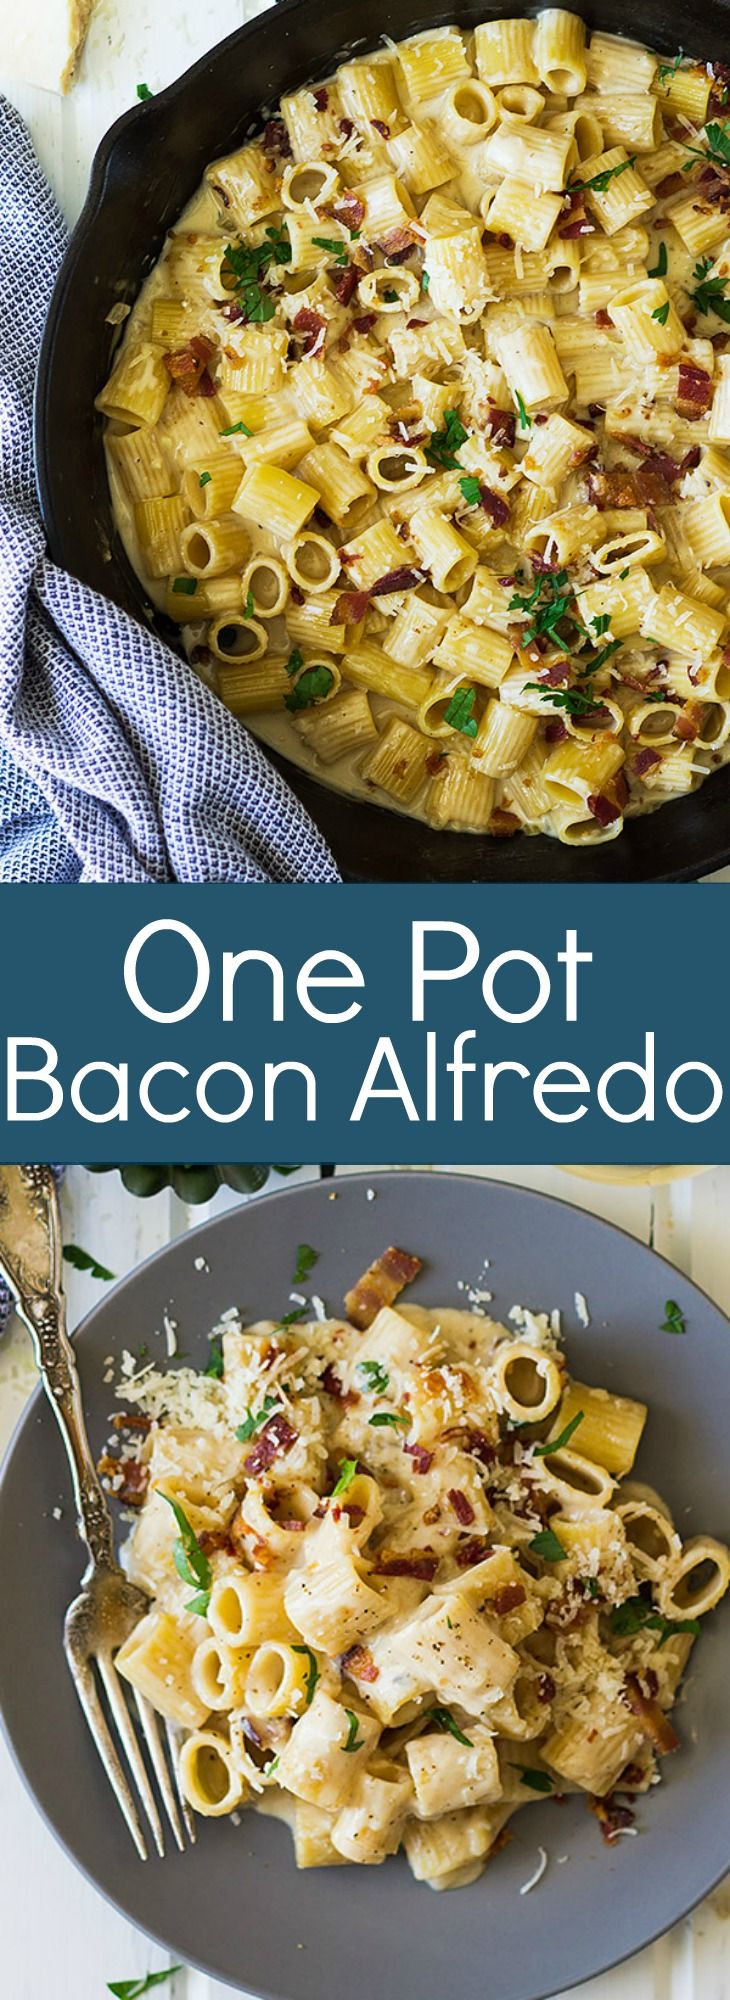 This One Pot Bacon Alfredo is a quick and easy weeknight meal that's full of flavor!   www.countrysidecravings.com